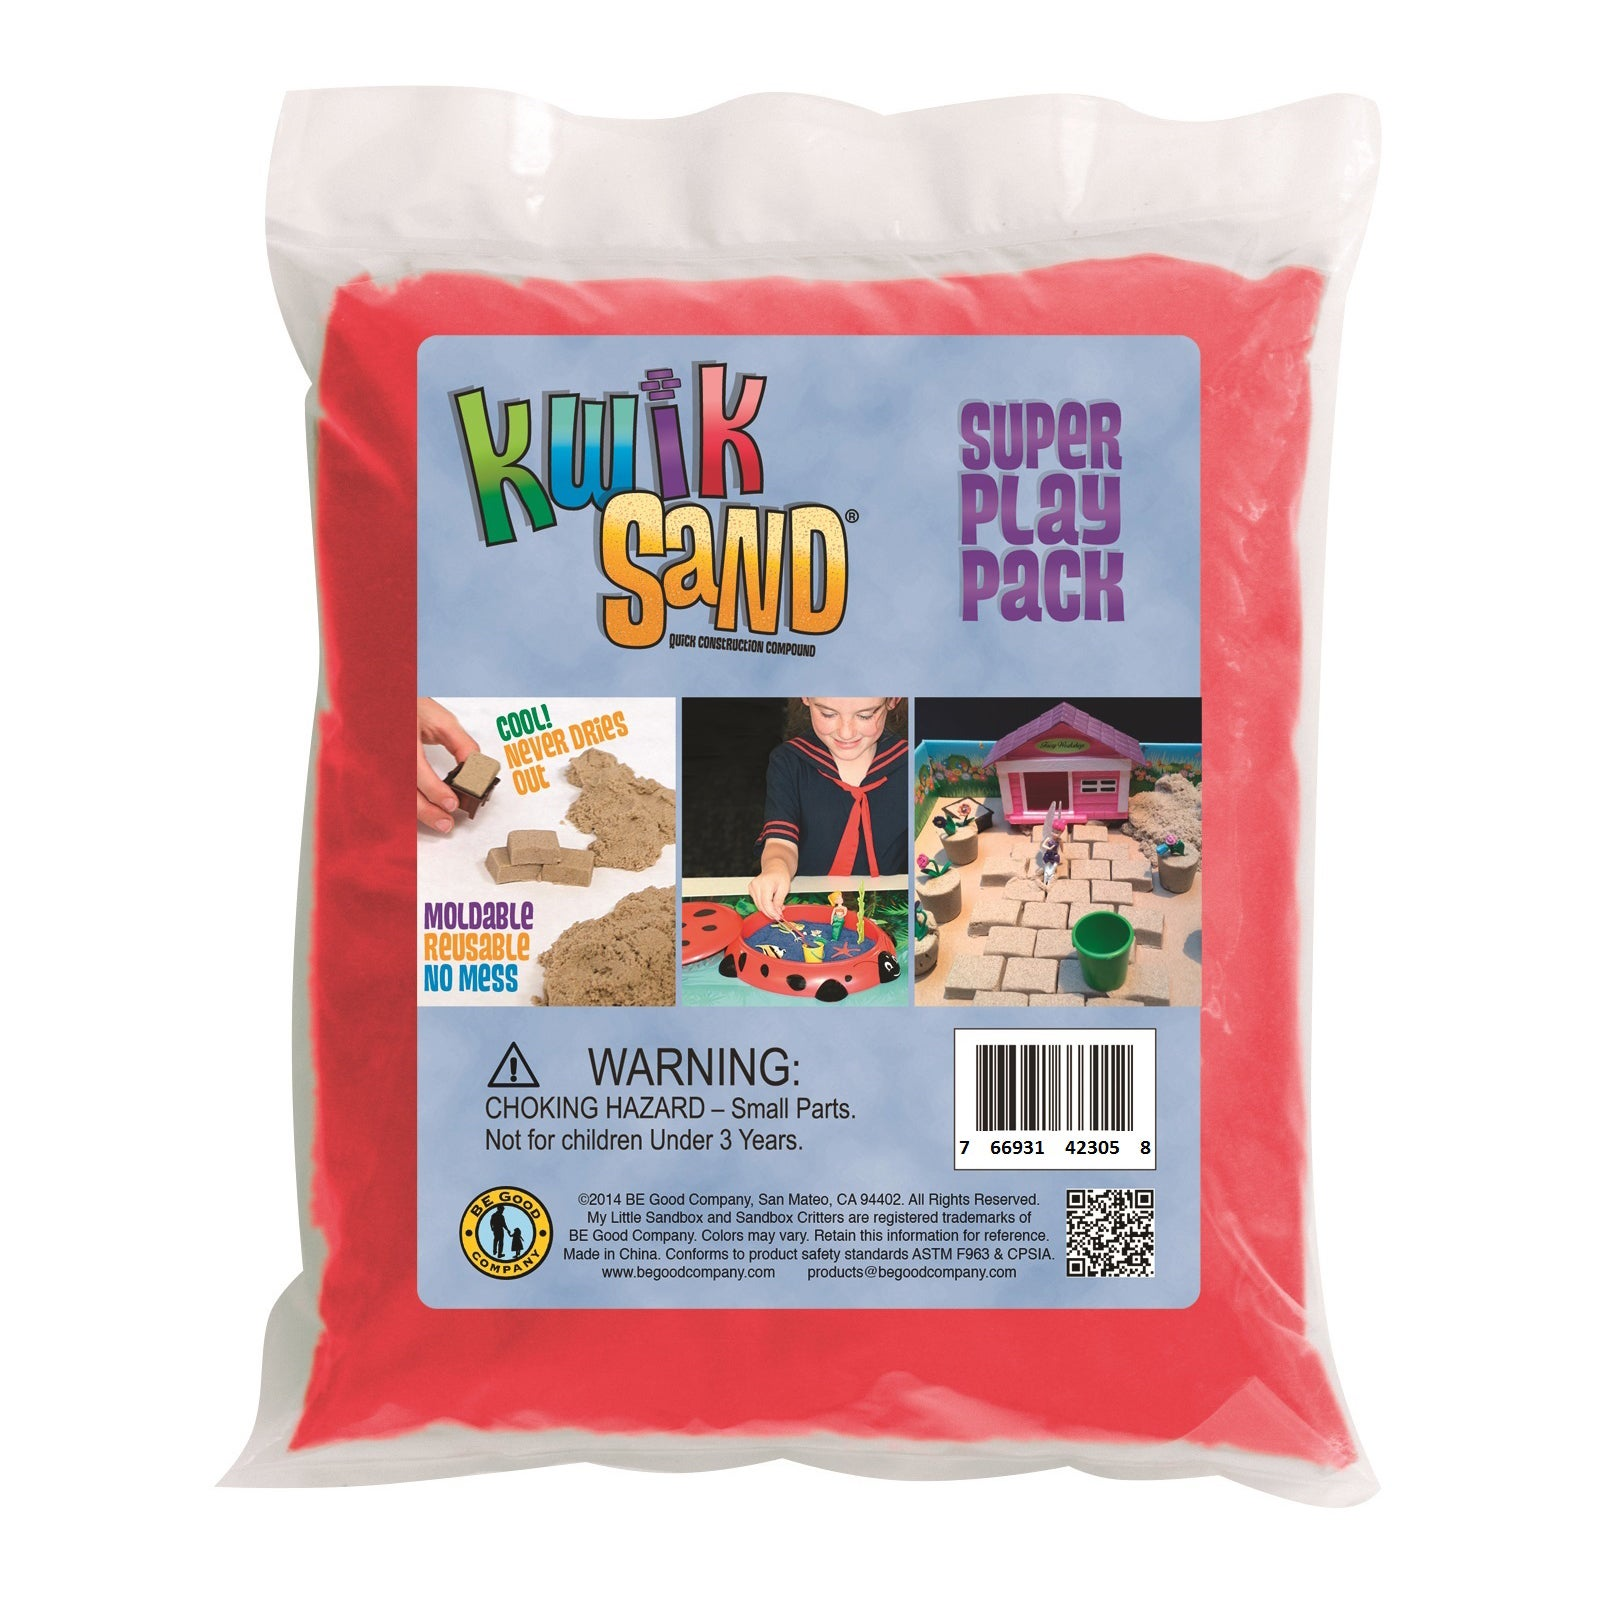 KwikSand Refill Pack Red